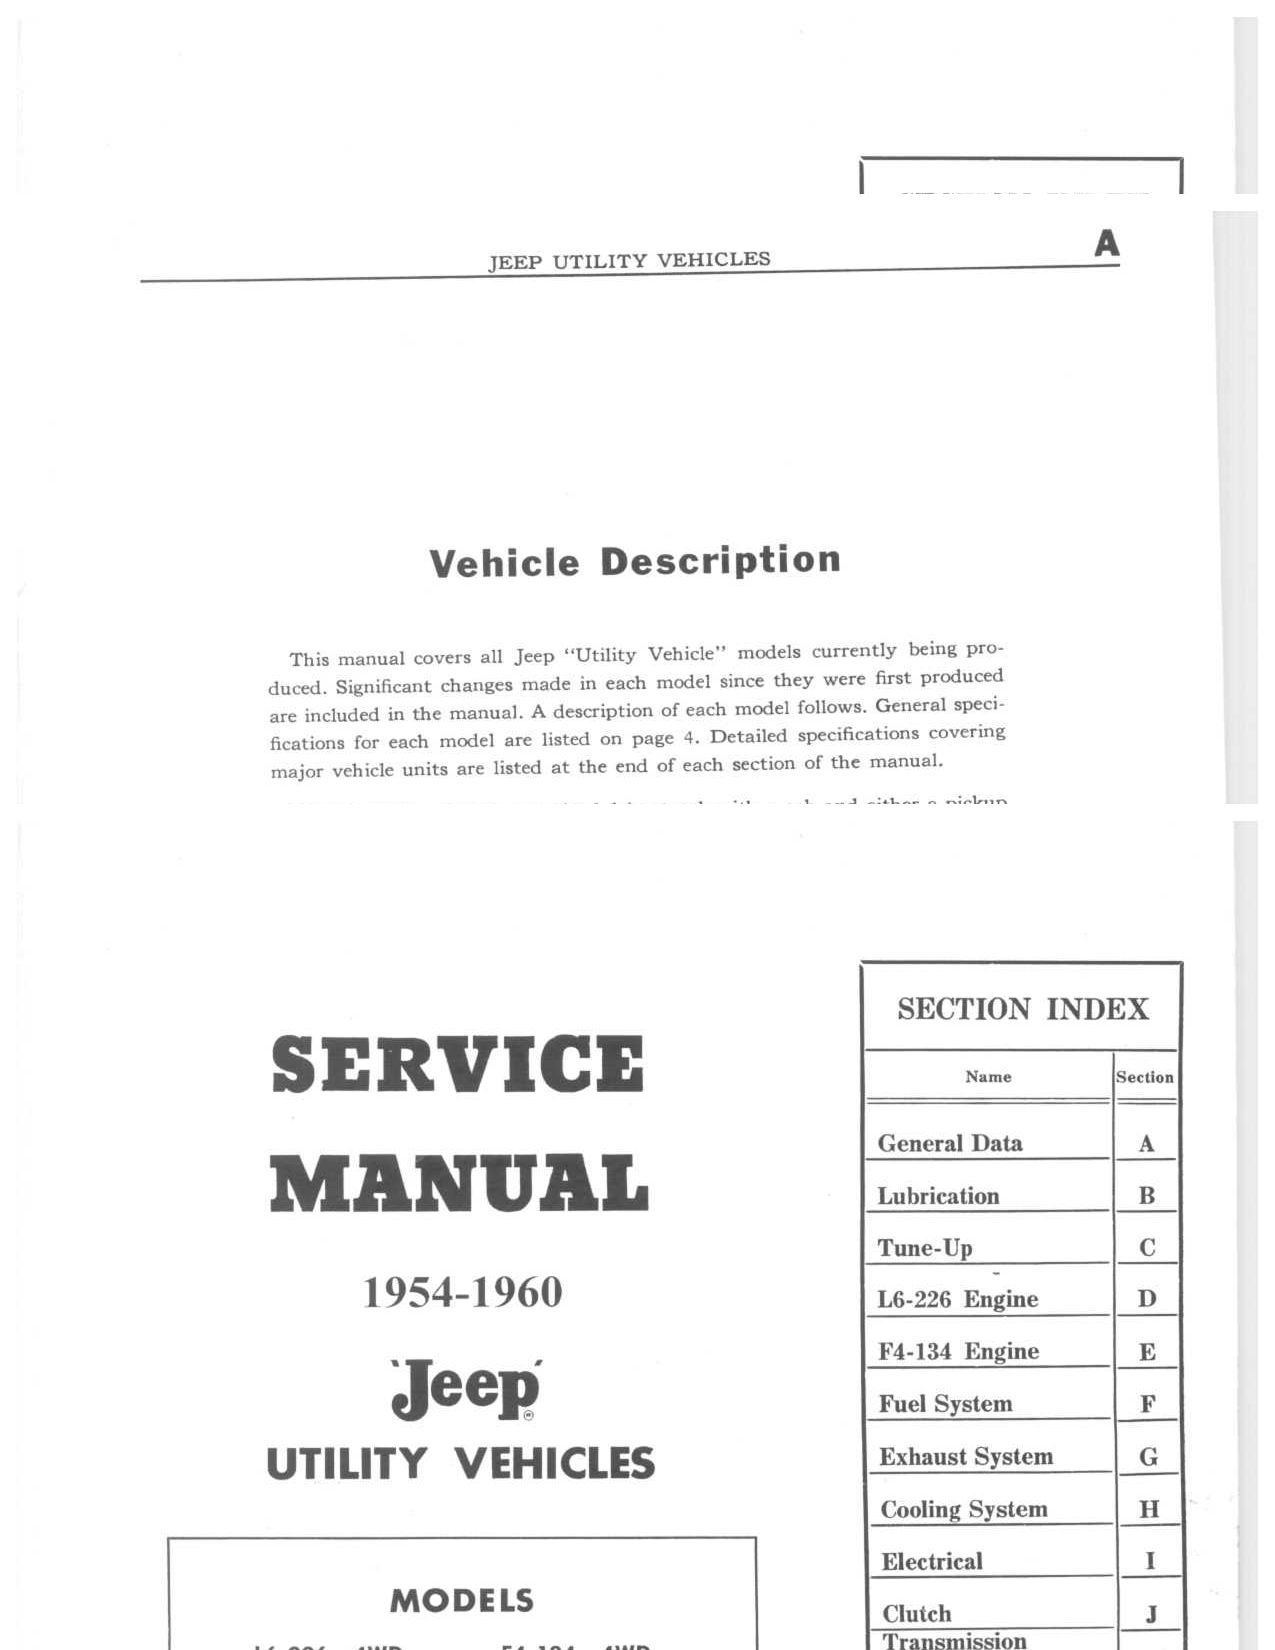 Jeep cj5 maintenance manual array service manual utility truck 1954 1960 jeep willys world rh jeepwillysworld com fandeluxe Image collections